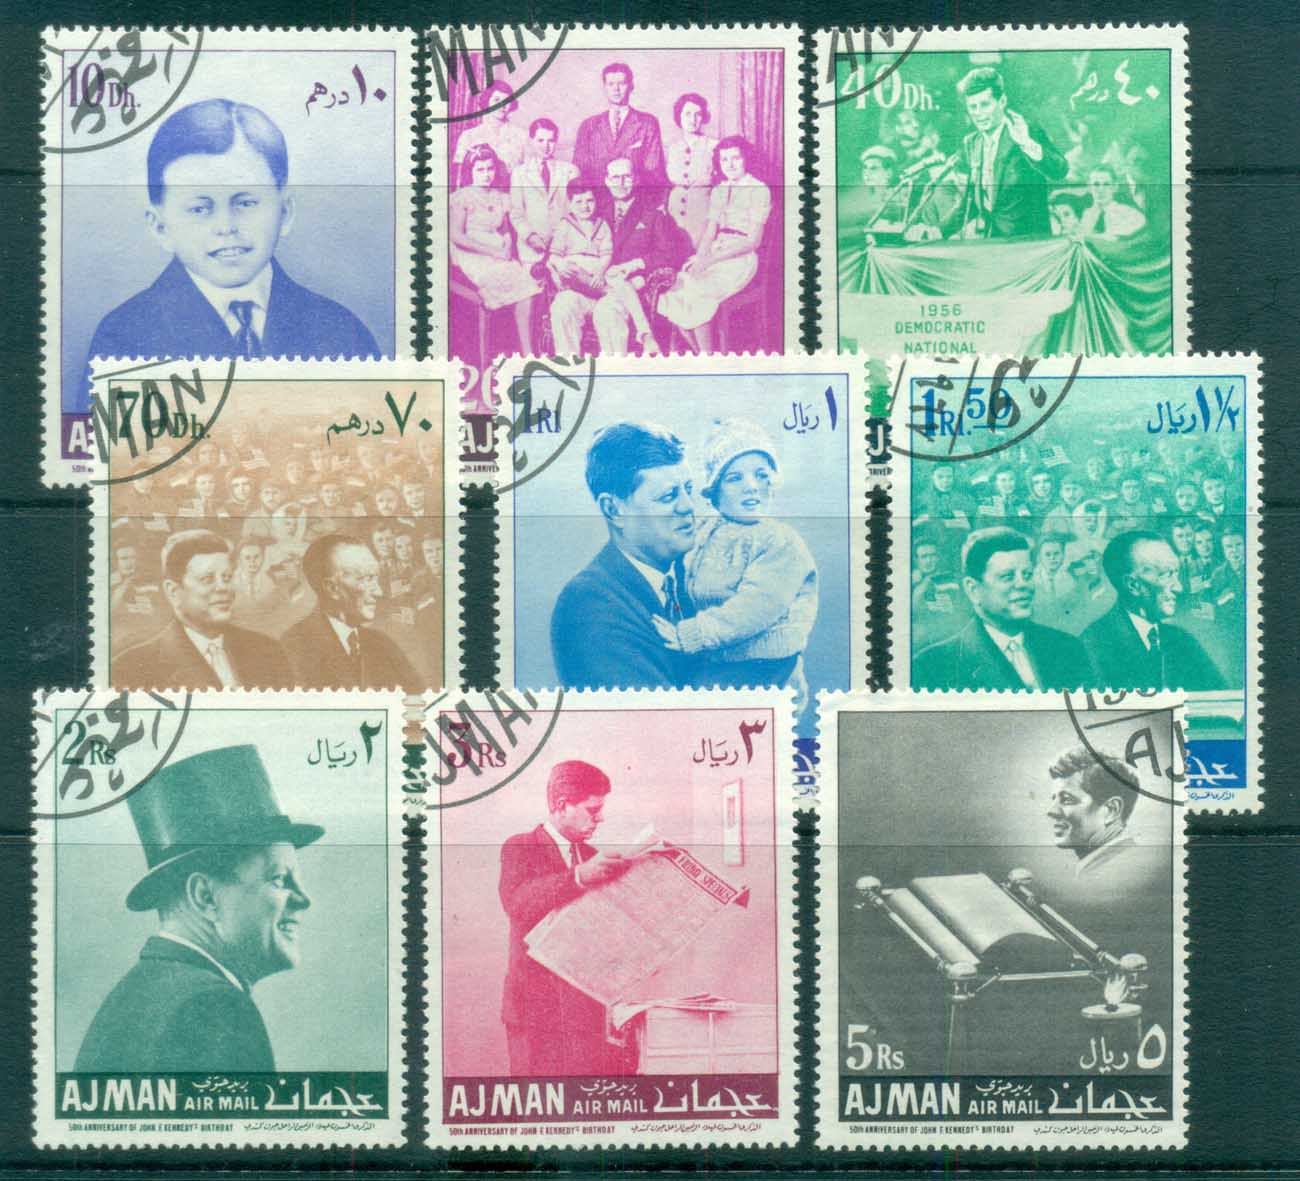 Ajman 1967 JFK Kennedy CTO lot77161